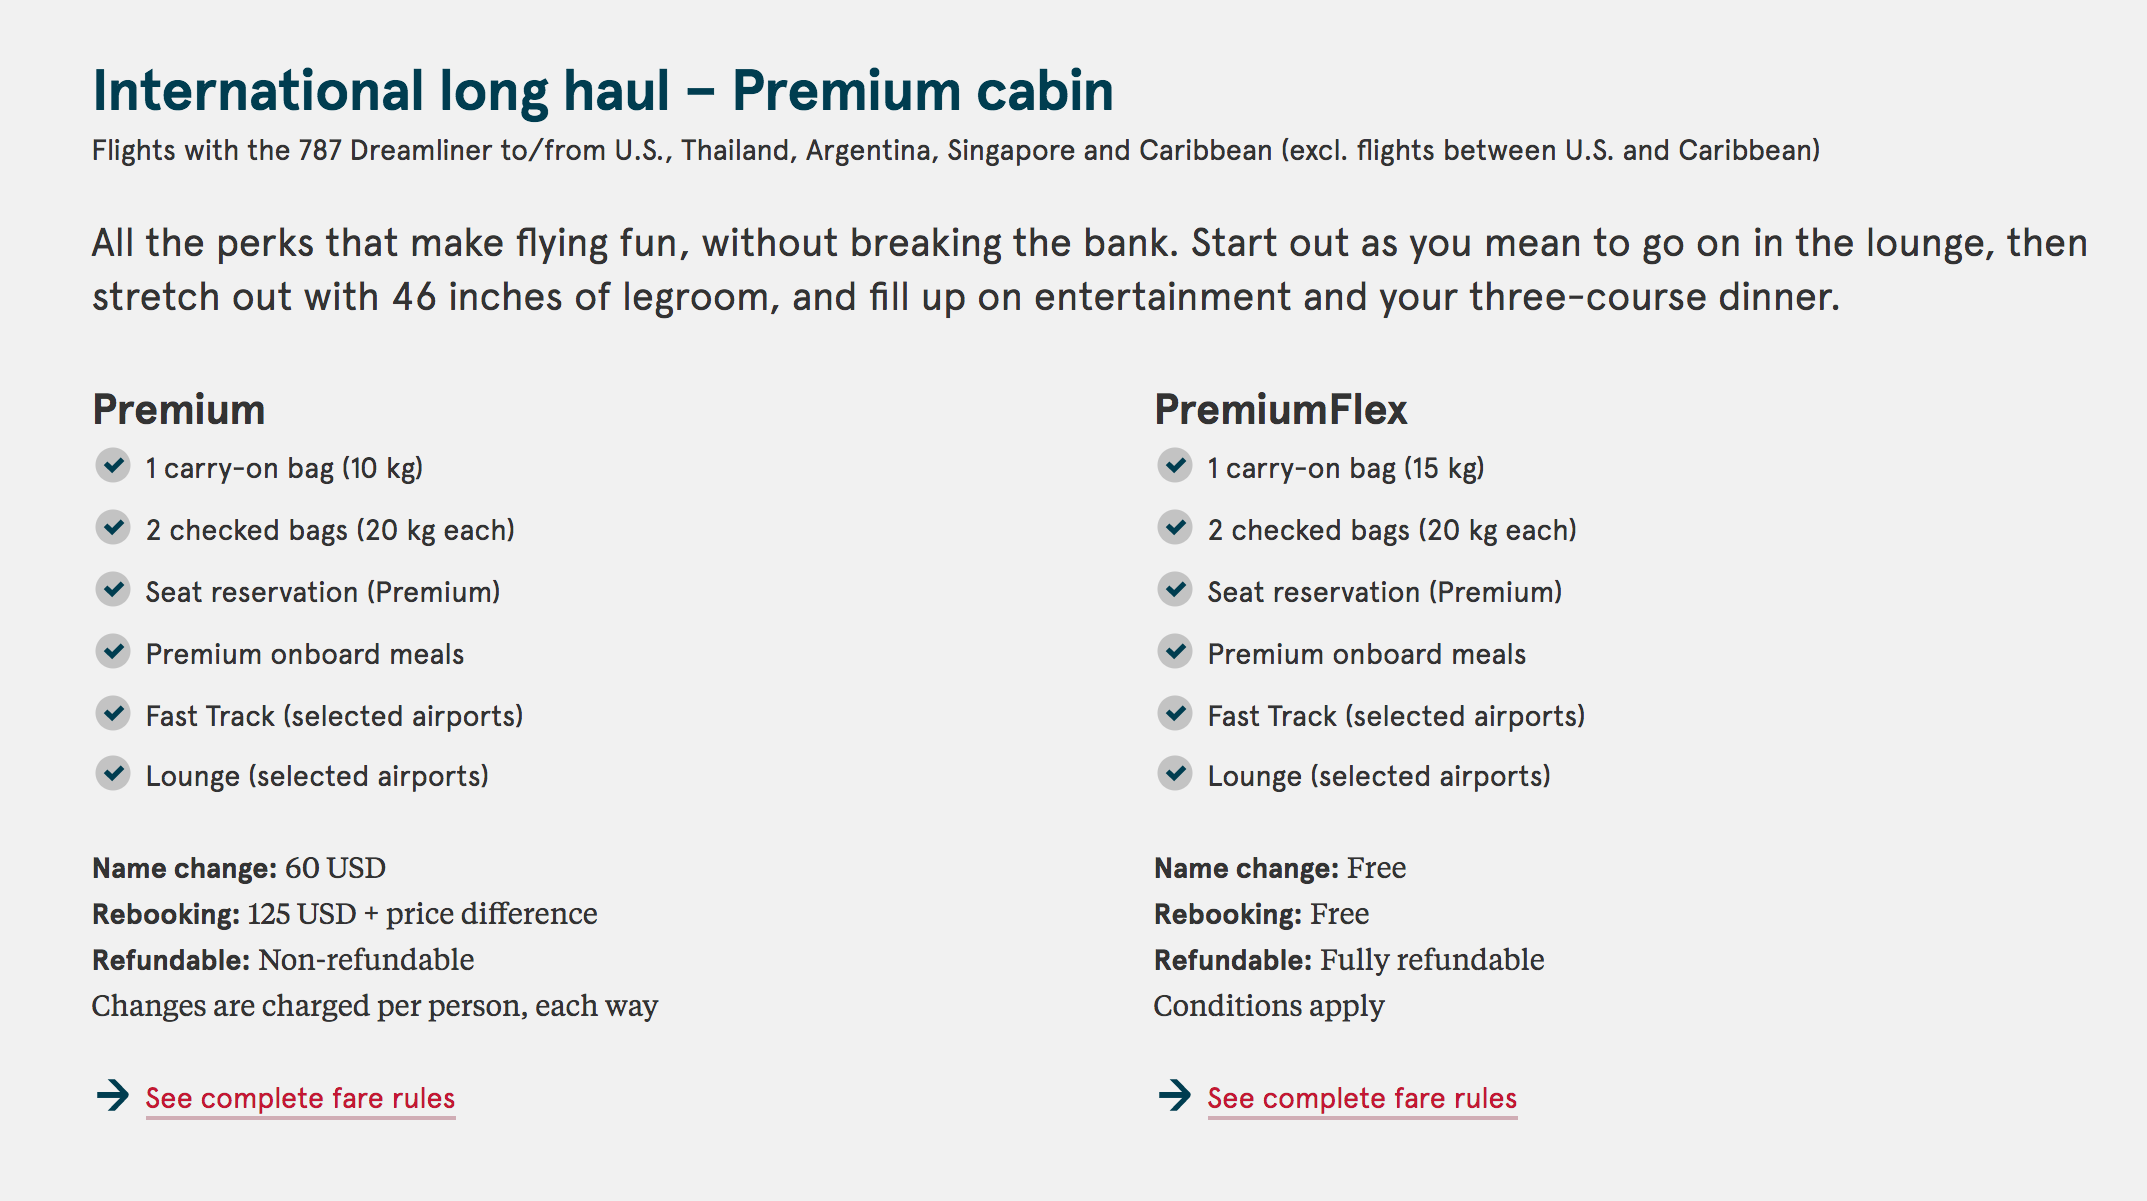 Norwegian Airlines, International Long-Haul Premium Fares